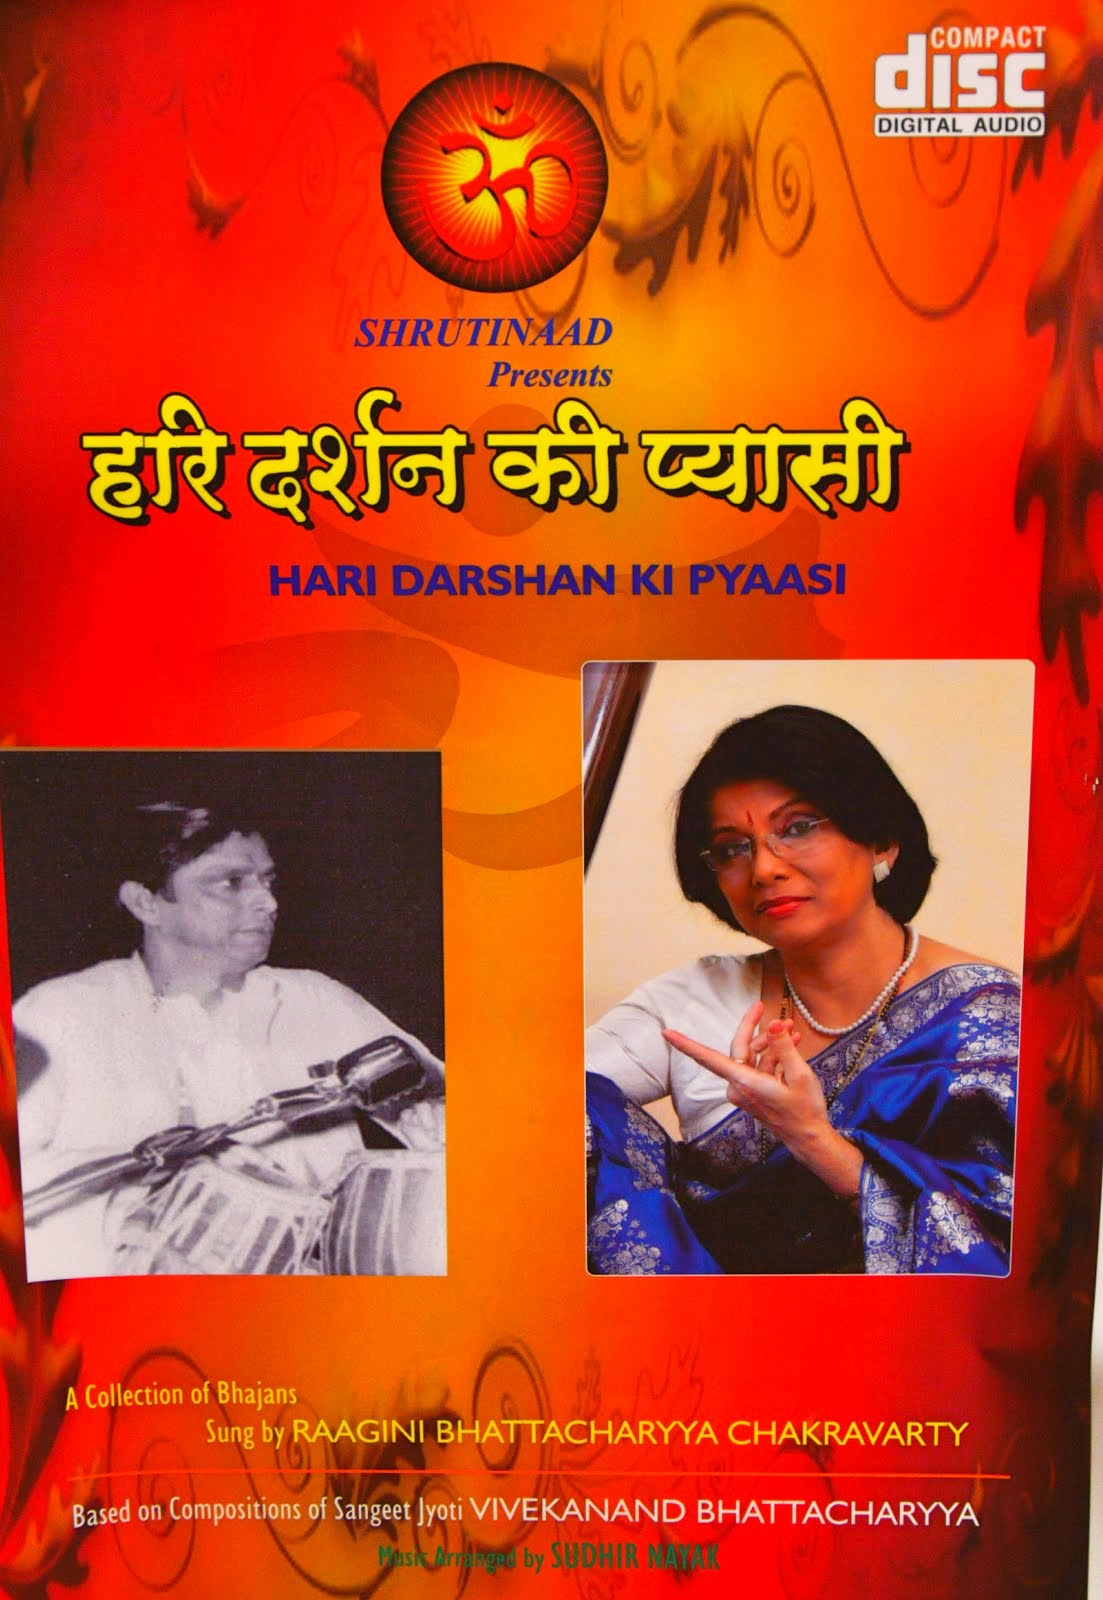 Ragini's New Album of Hindi Bhajans